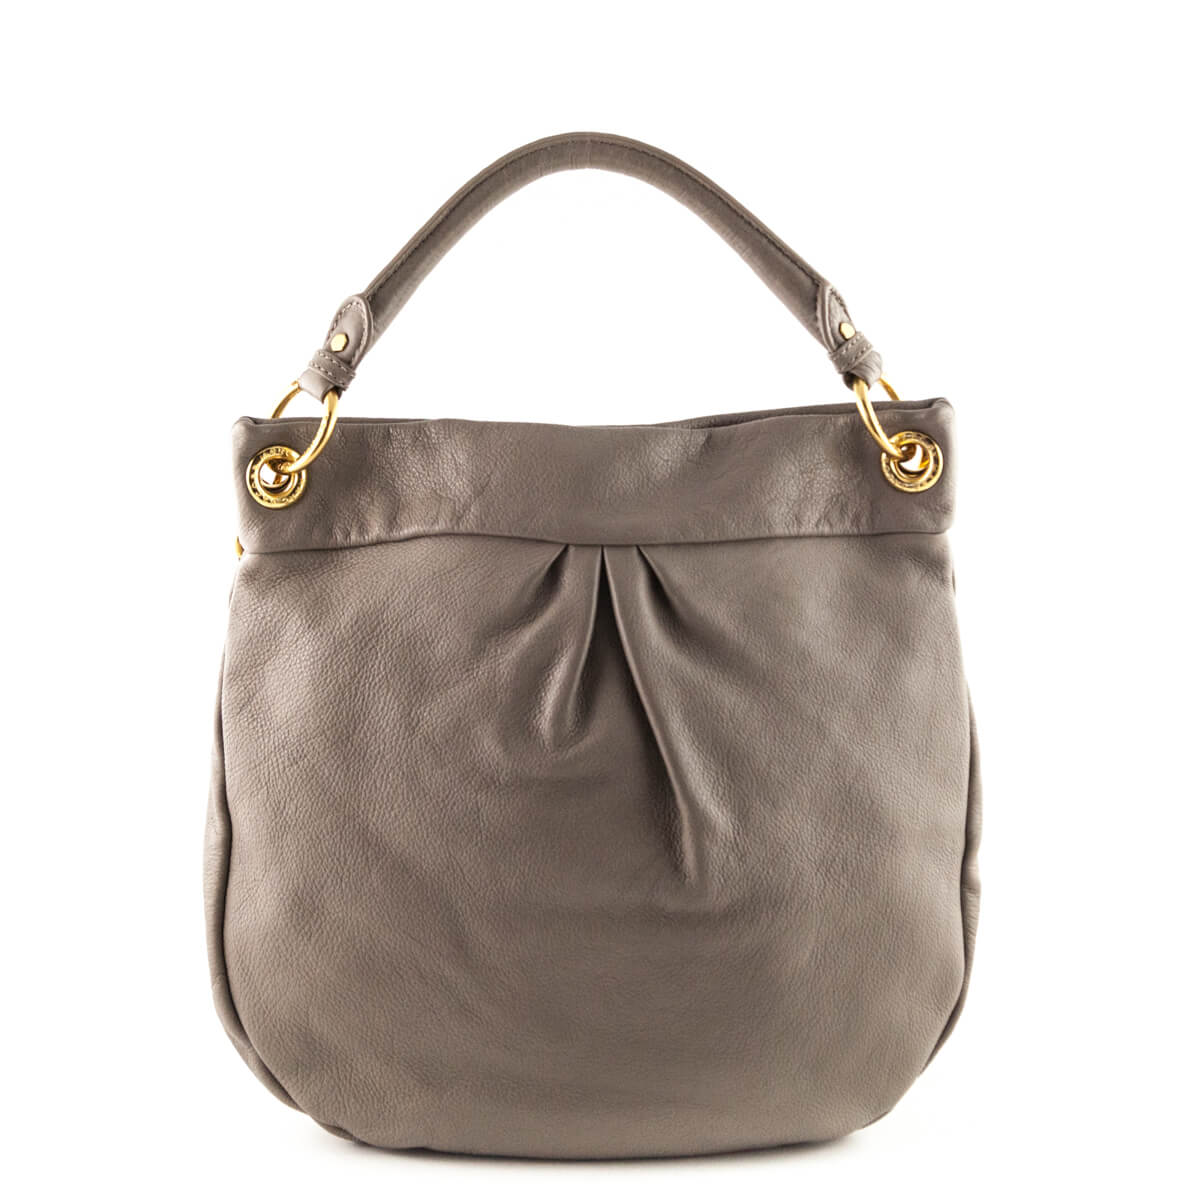 18da3810441 ... Marc by Marc Jacobs Zinc Classic Q Hillier Hobo - LOVE that BAG -  Preowned Authentic ...